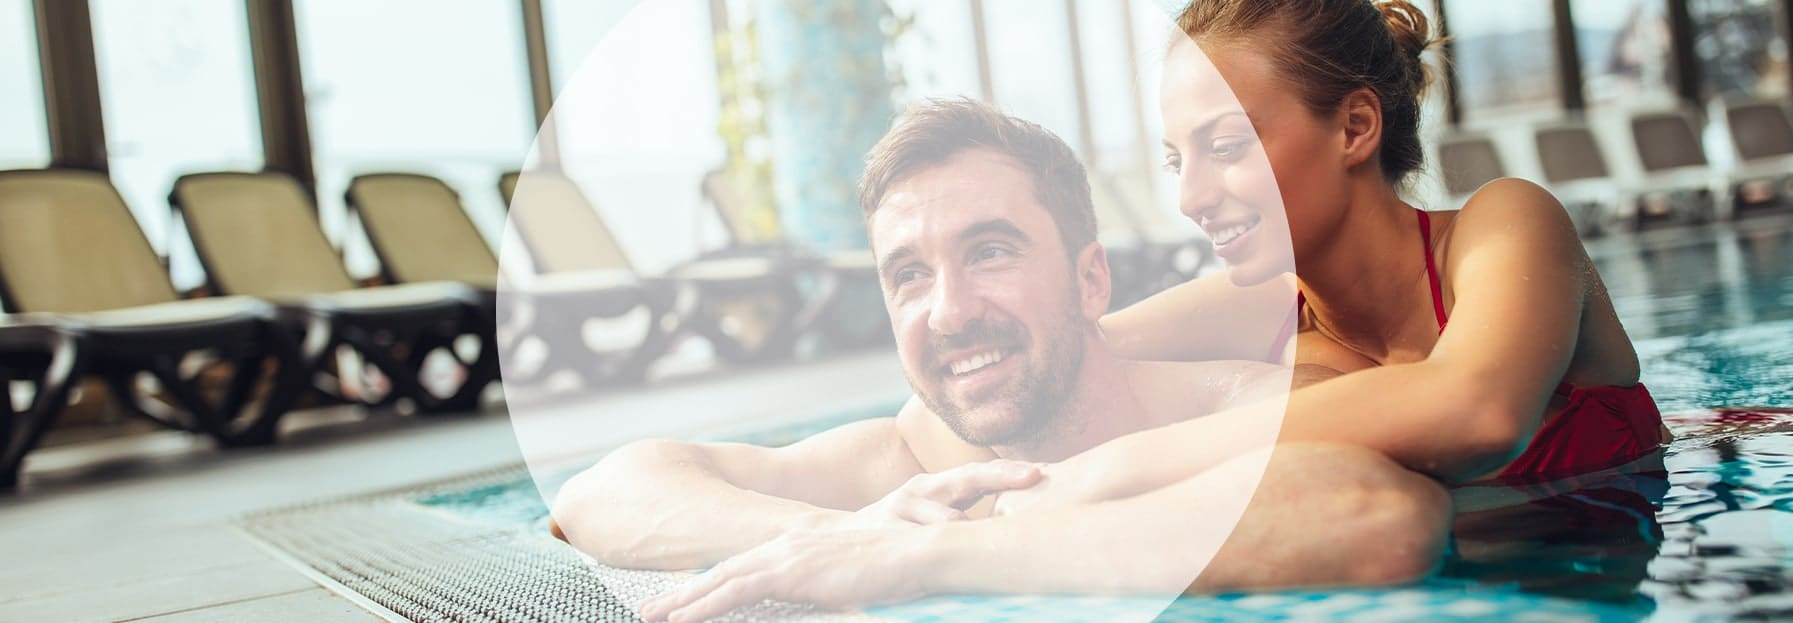 couple in swimming pool - tourism & leisure